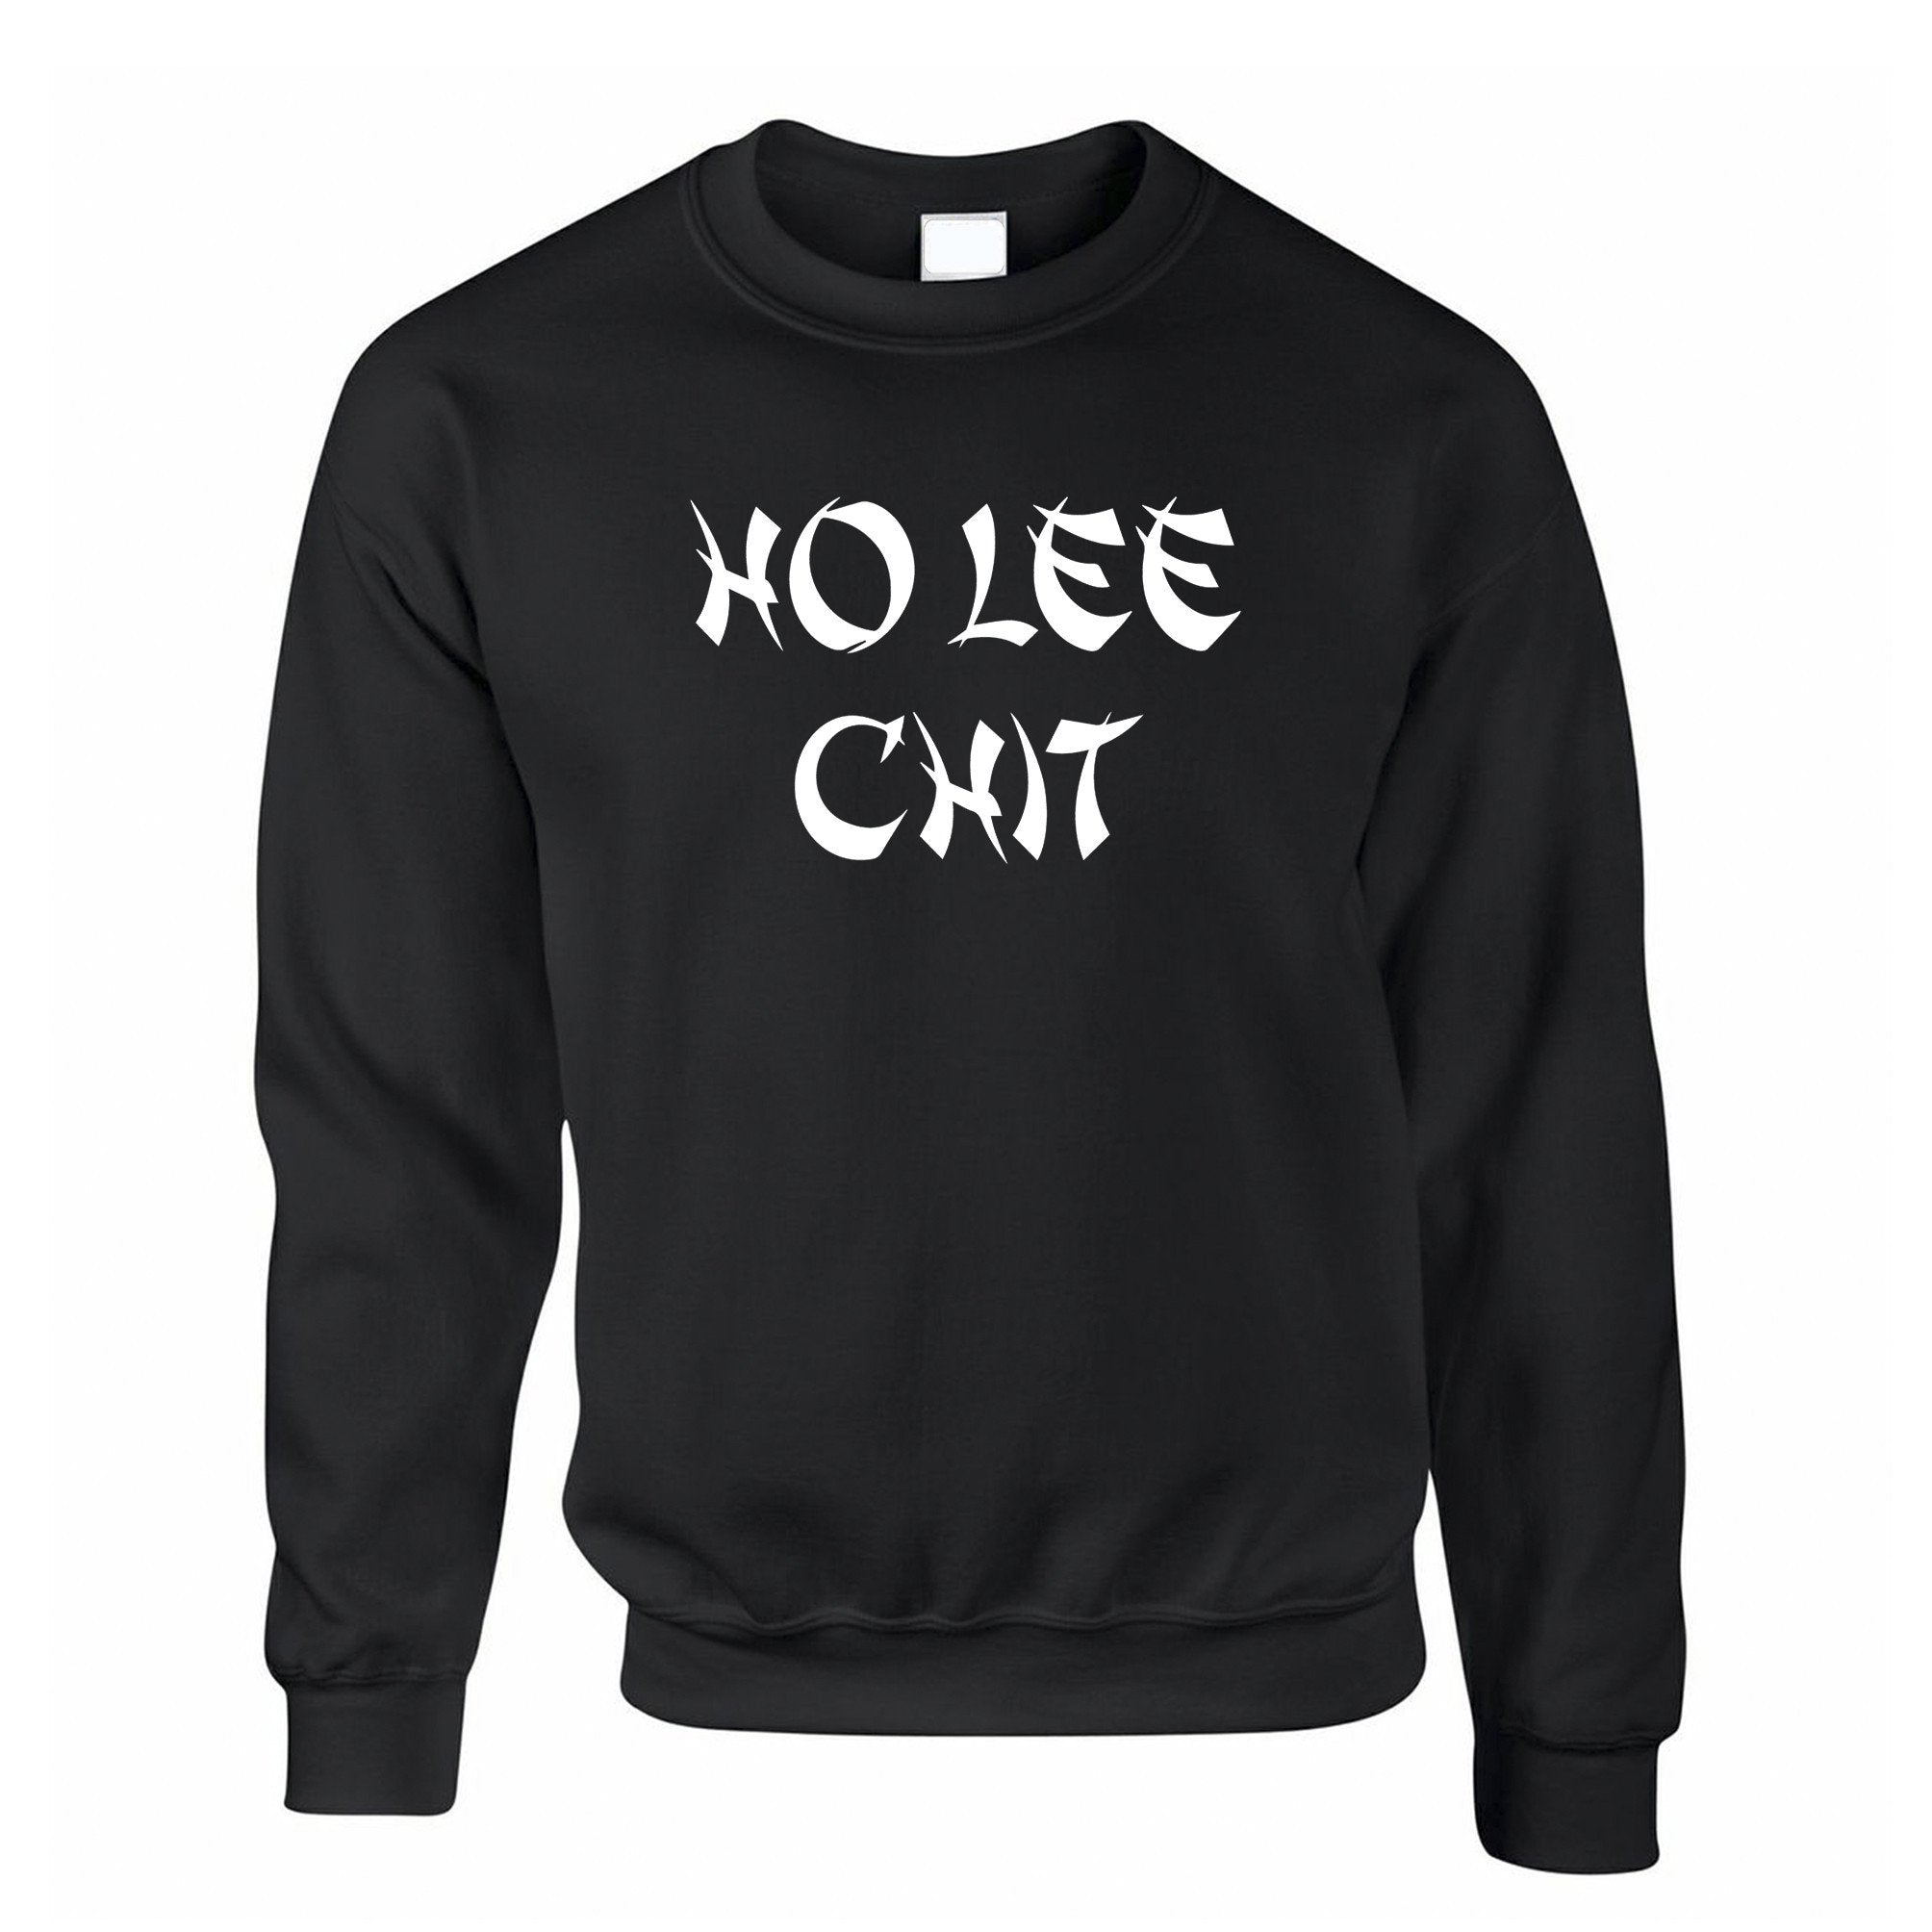 Novelty Jumper Ho Lee Chit Cheeky Rude Slogan Sweatshirt Sweater